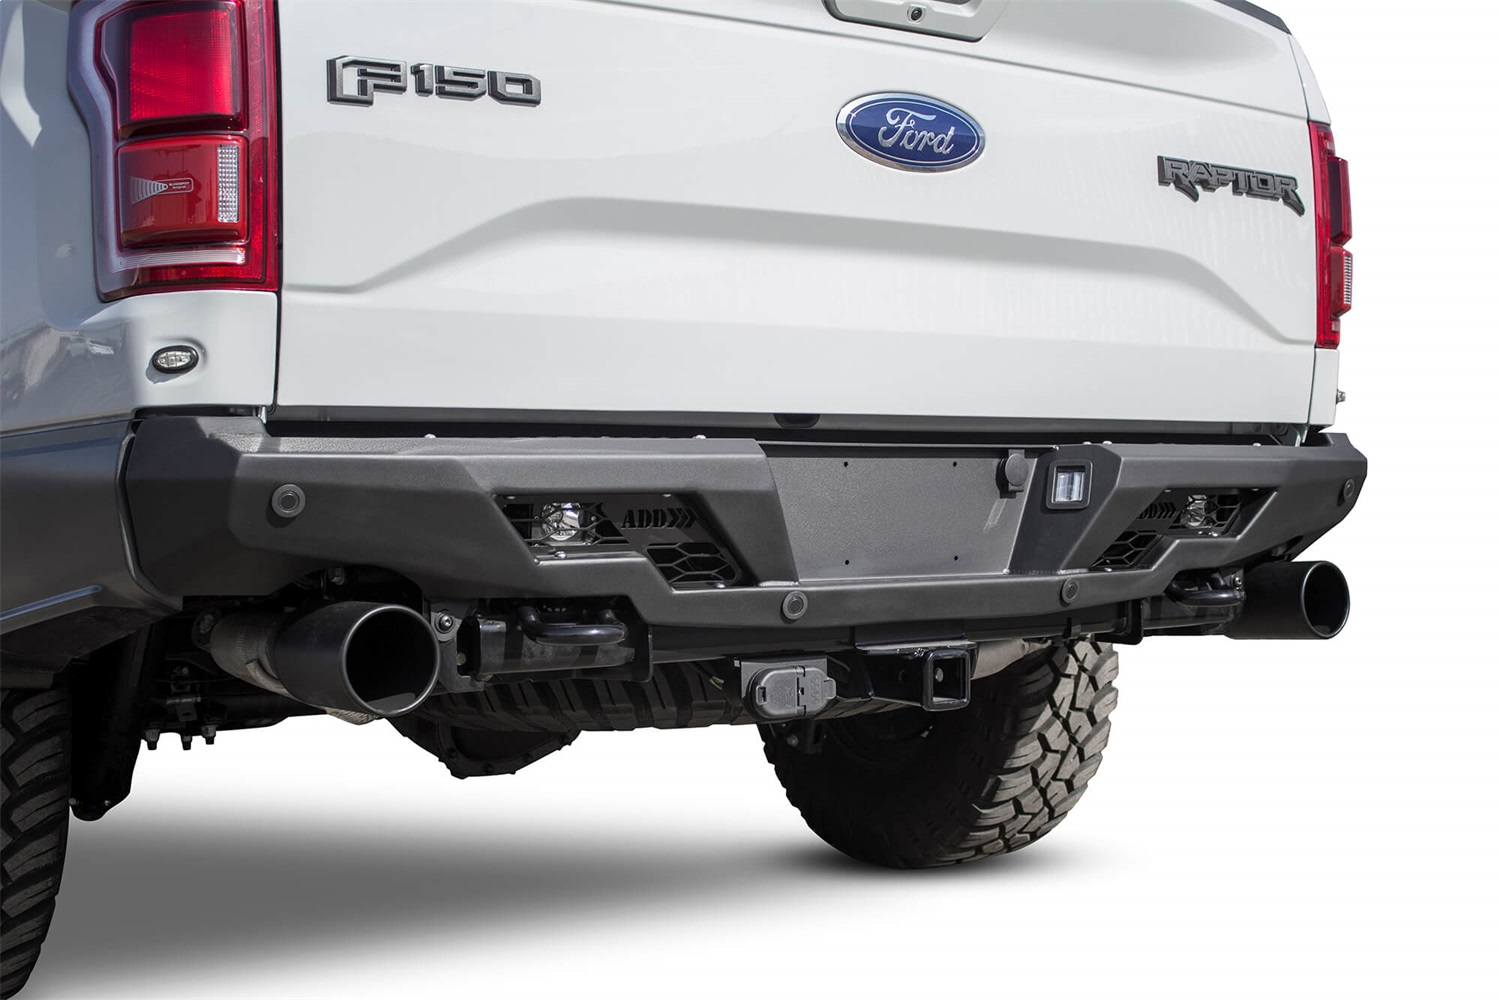 Addictive Desert Designs R111231280103 Stealth Fighter Rear Bumper Fits F-150